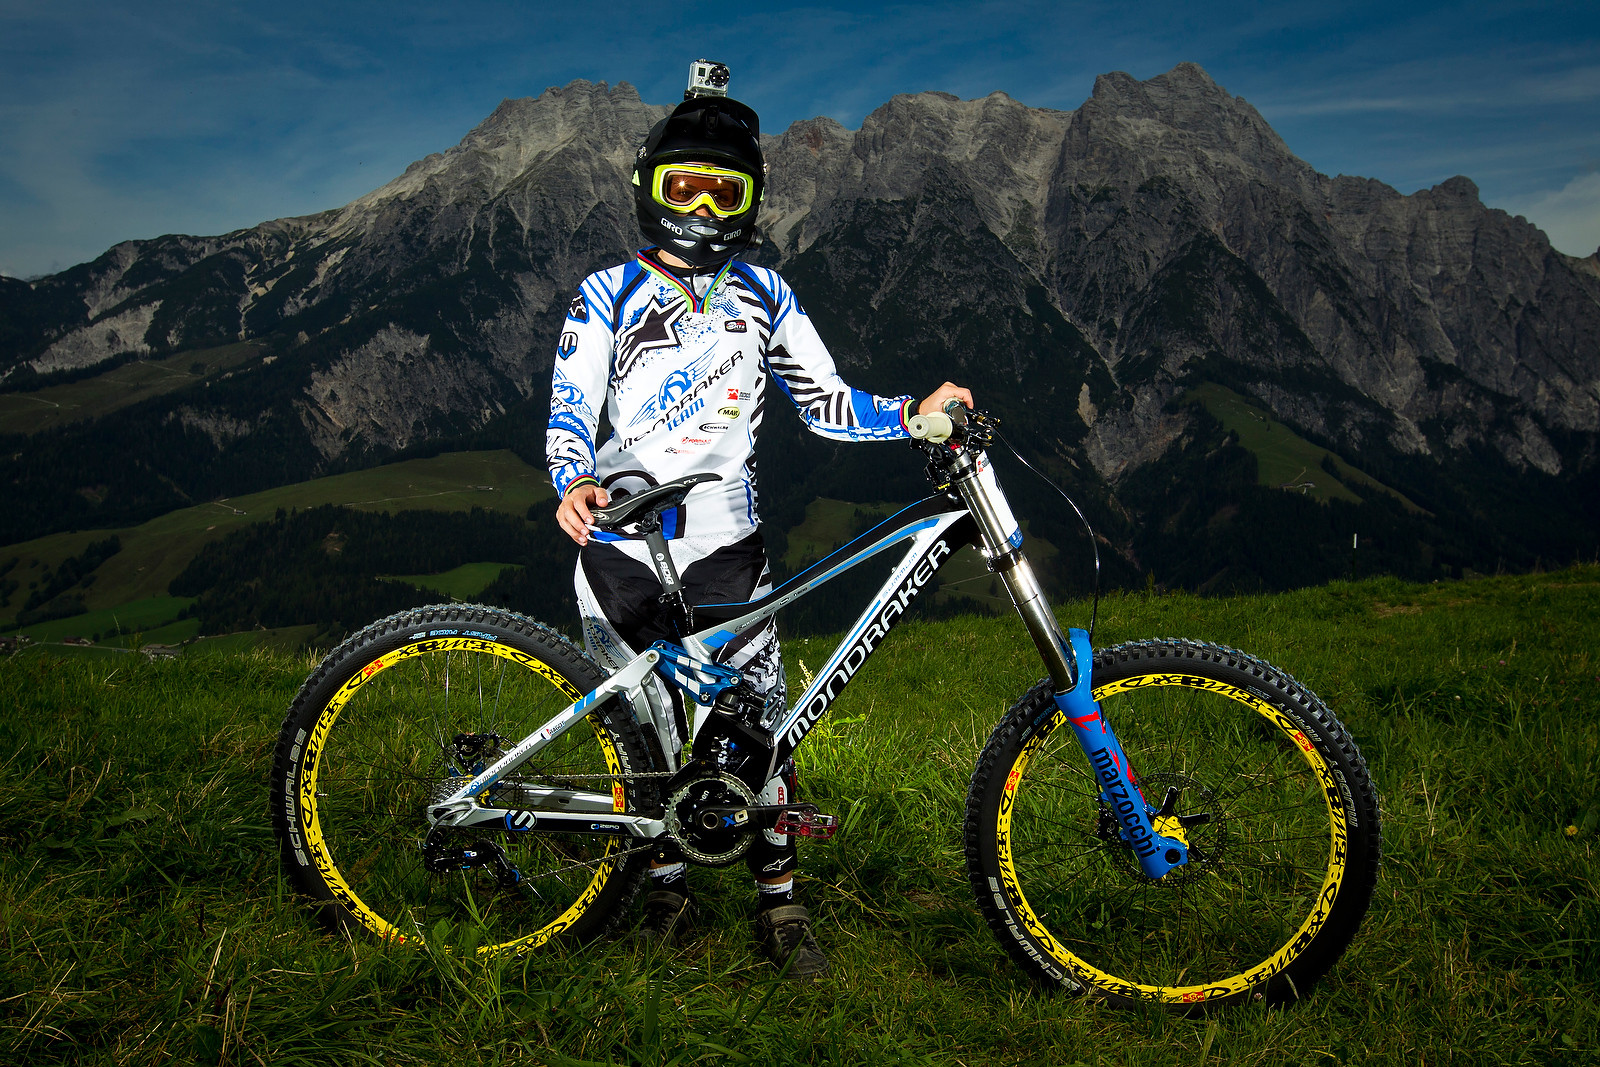 Emmeline Ragot with her Mondraker Summum - World Championships Riders and Bikes - Mountain Biking Pictures - Vital MTB